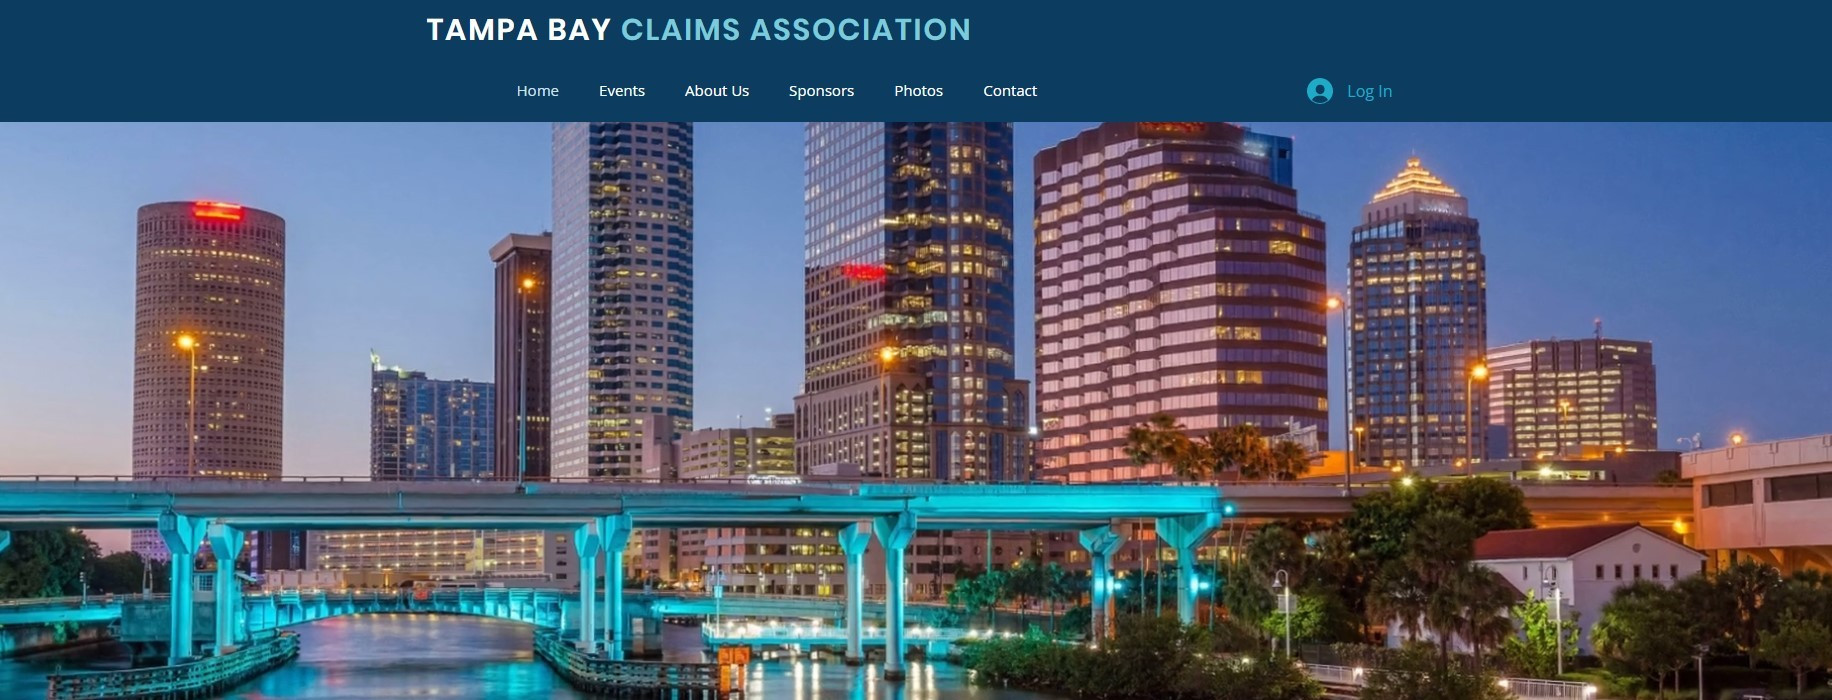 Tampa Bay Claims | Home